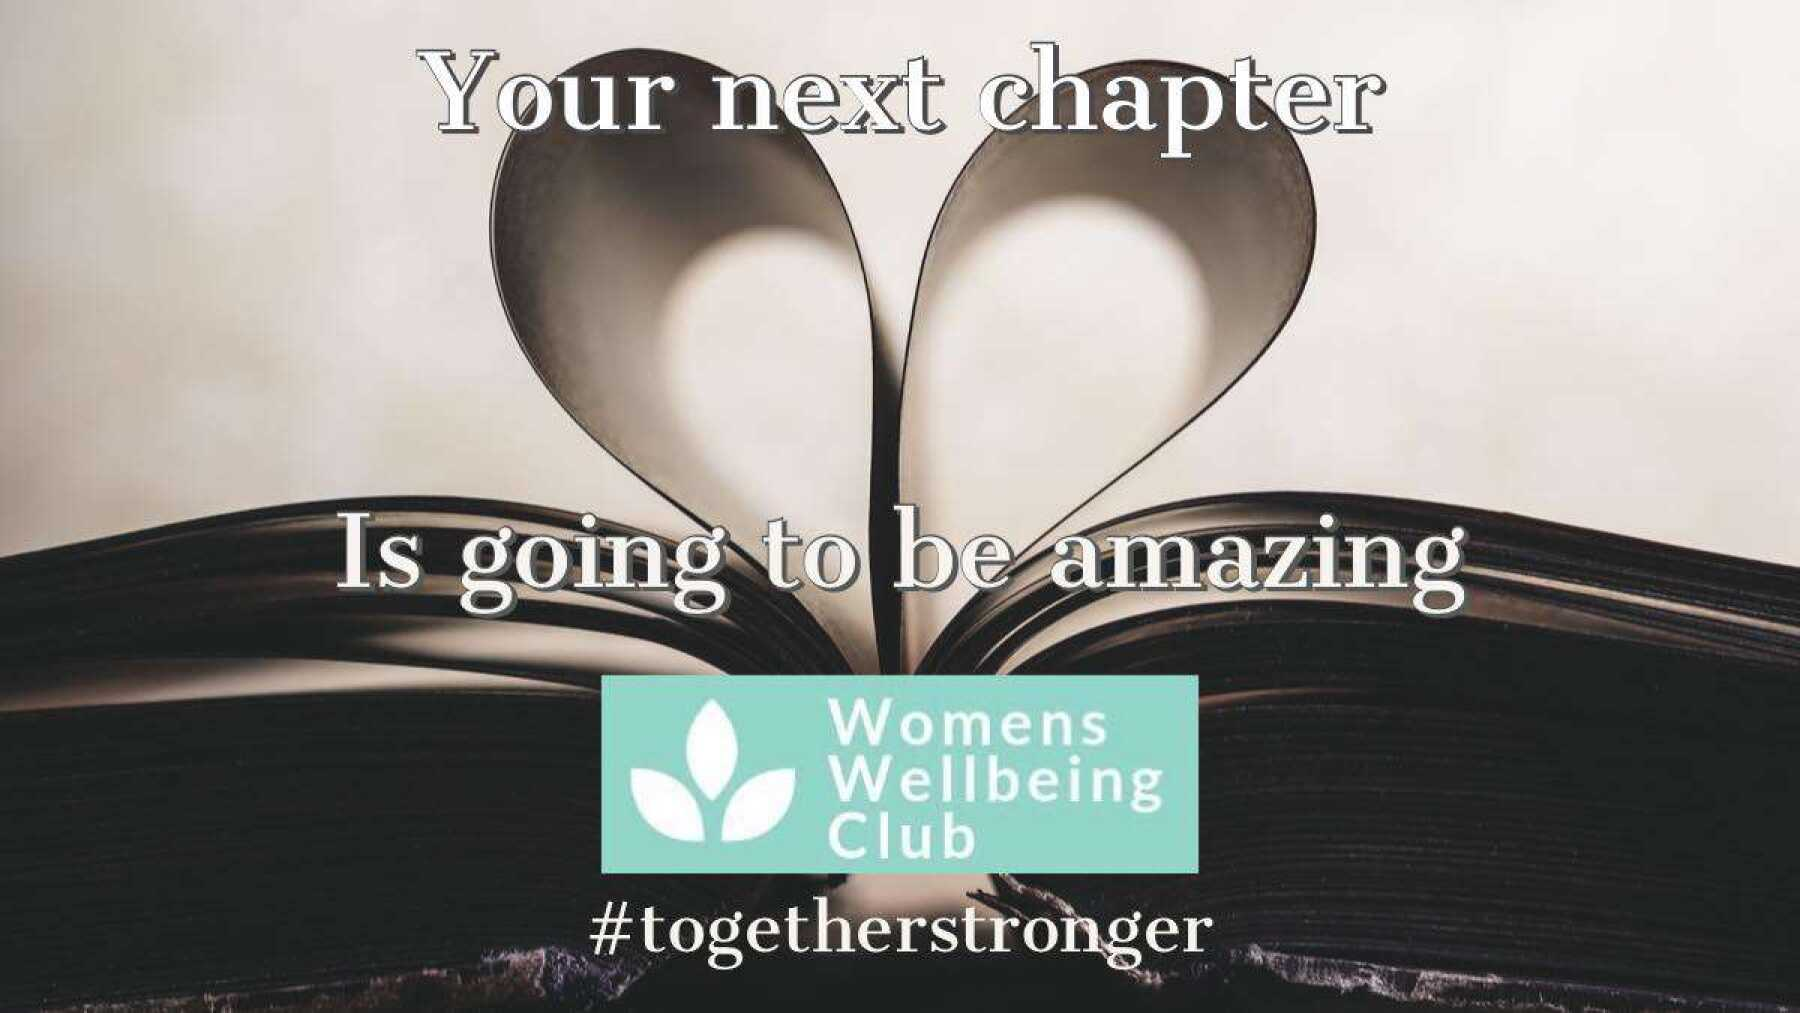 Featured Image for Womens wellbeing club cic - Newton Abbot